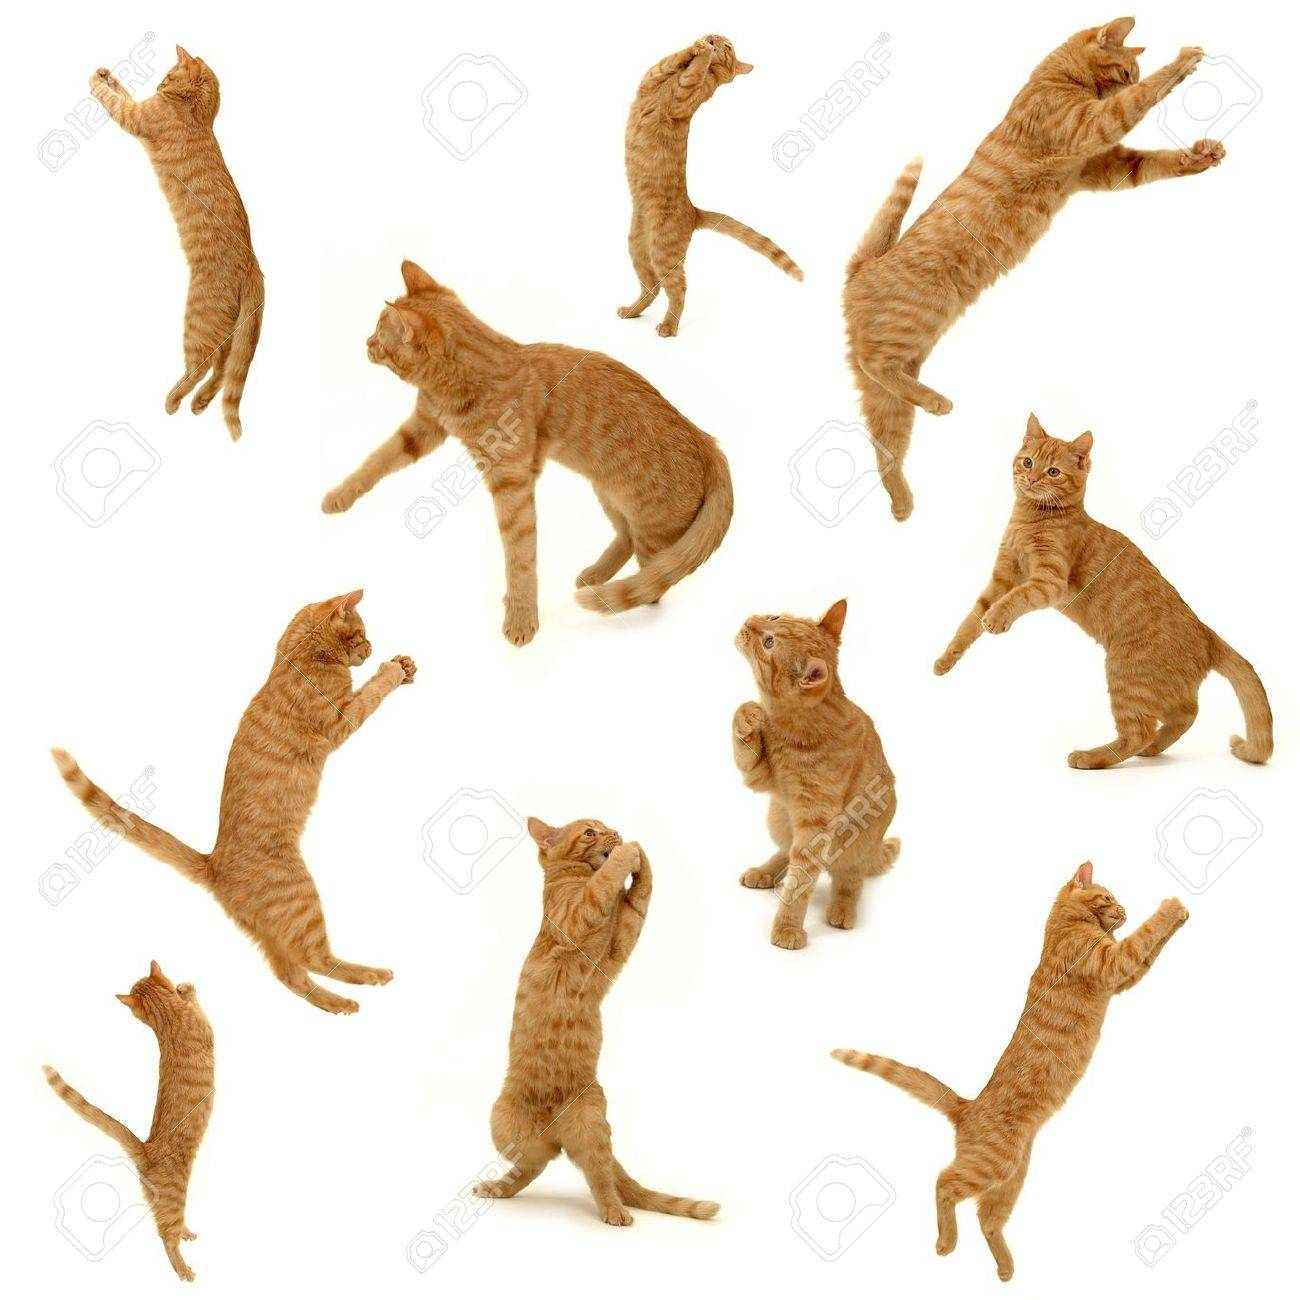 collection of kittens in action. On white background. 3500 x 3500 pixels. Stock Photo - 918604